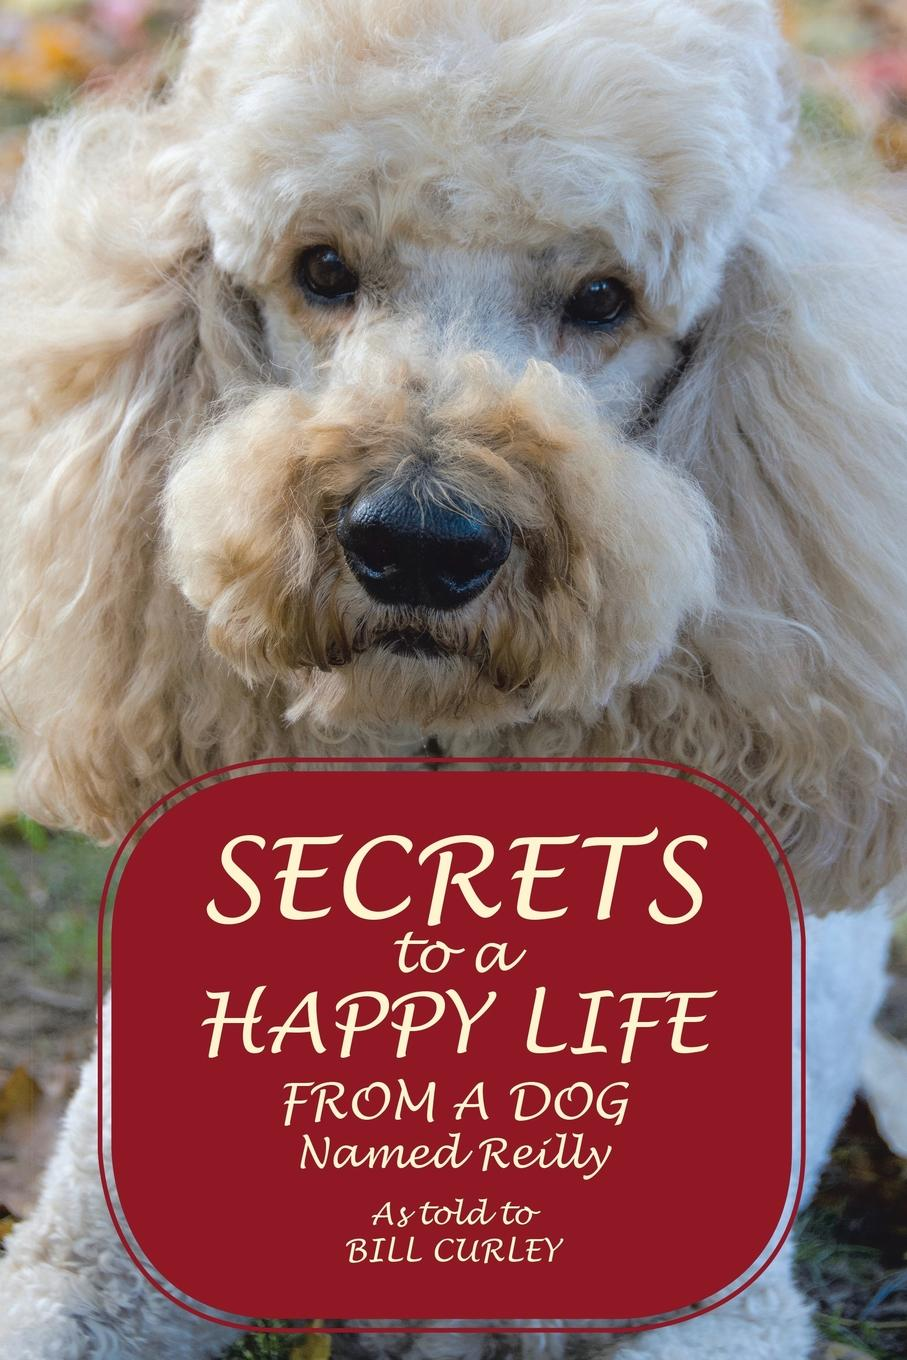 Bill Curley Secrets to a Happy Life from a Dog Named Reilly if only they could talk